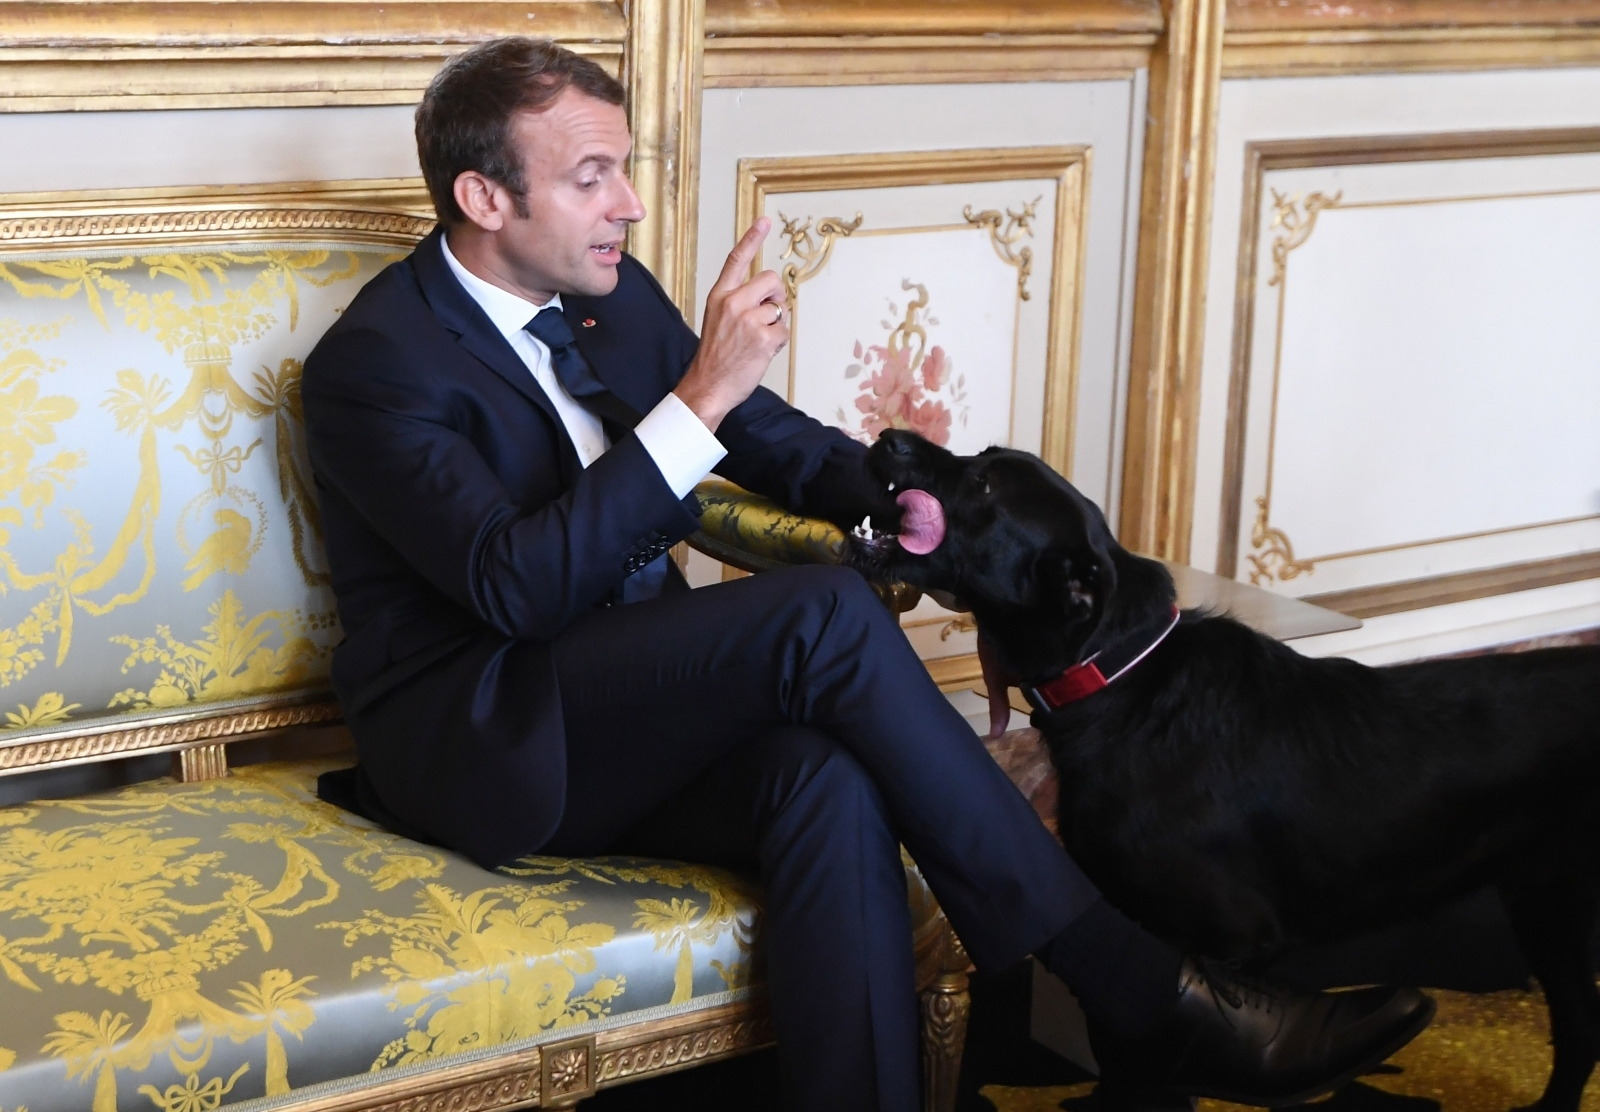 French president's dog interrupts meeting with a pee, video goes viral